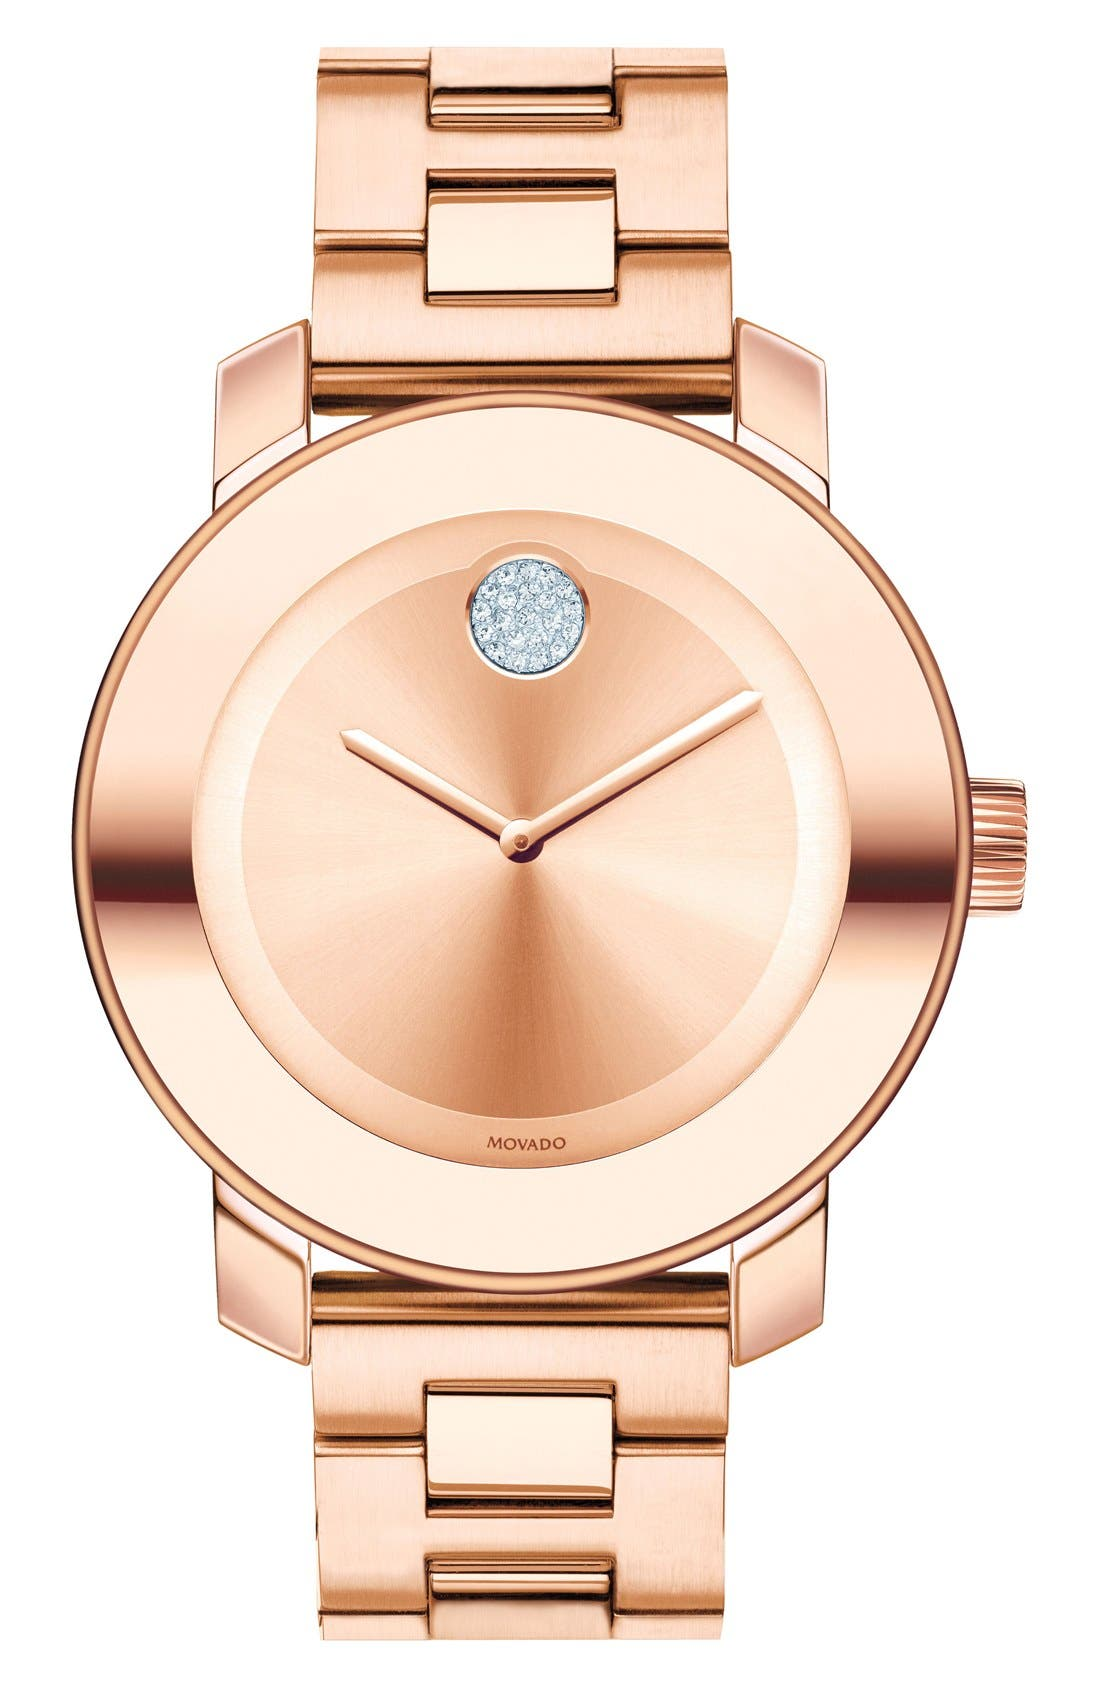 burberry girl watches